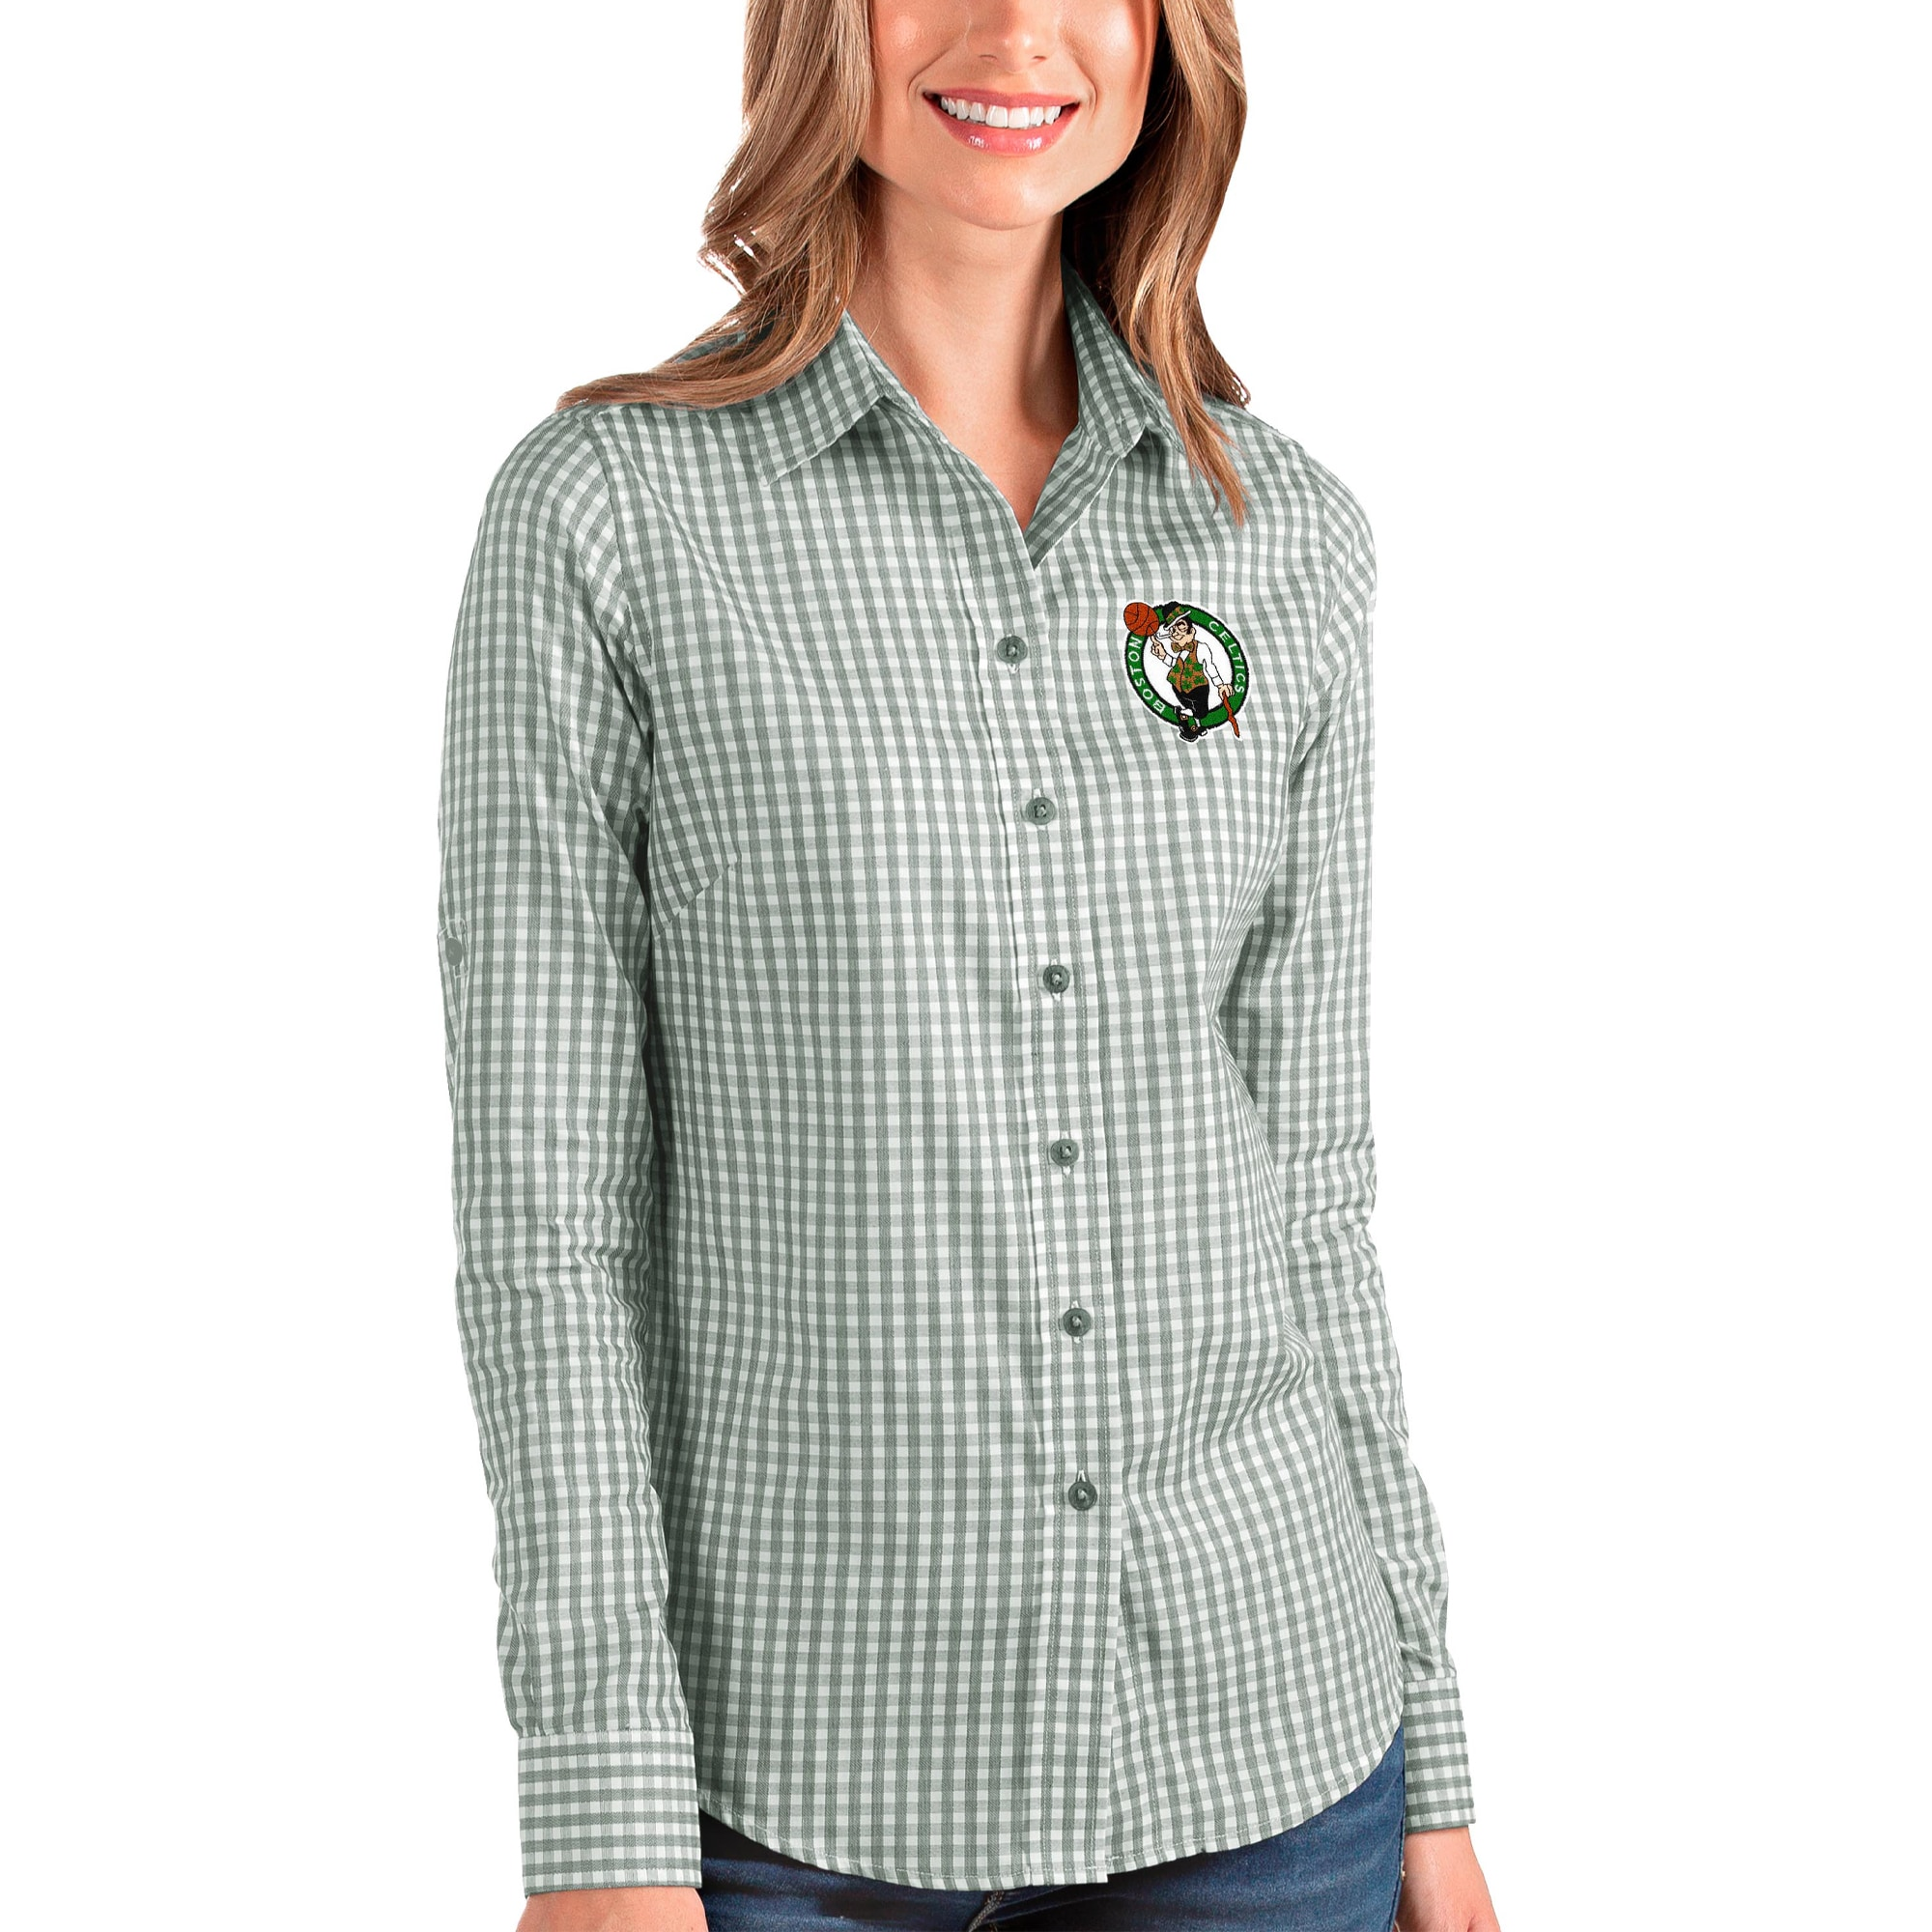 Boston Celtics Antigua Women's Structure Button-Up Long Sleeve Shirt - Green/White